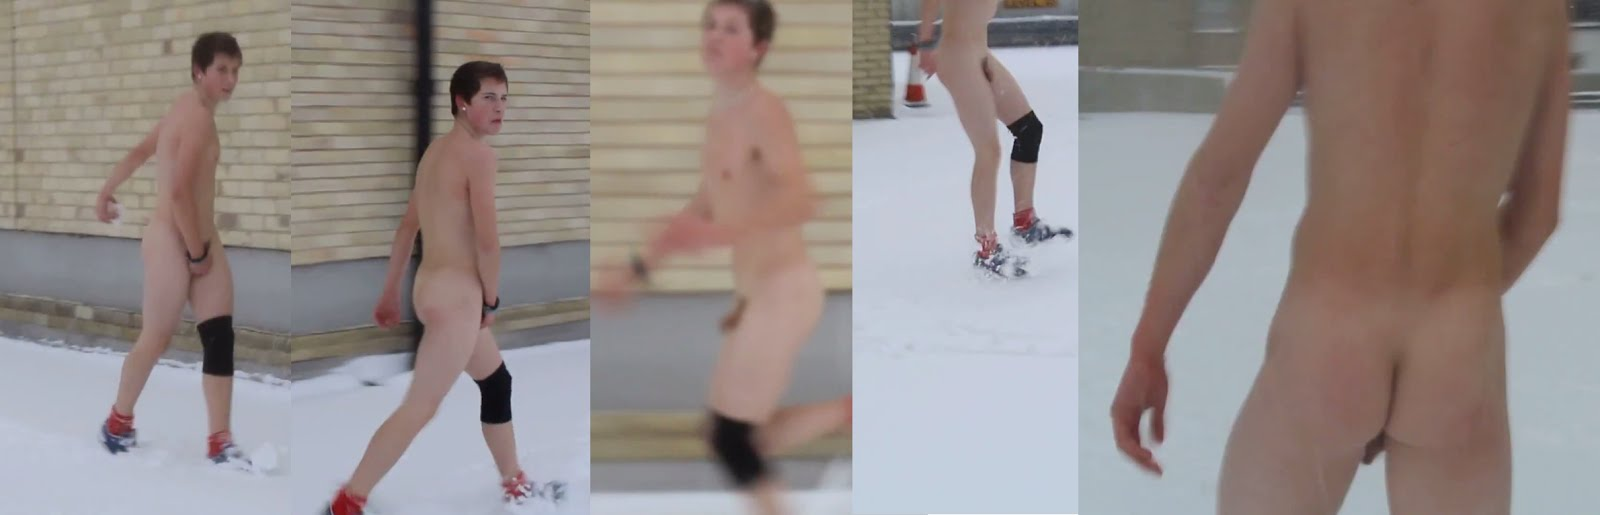 Nude dudes in the snow